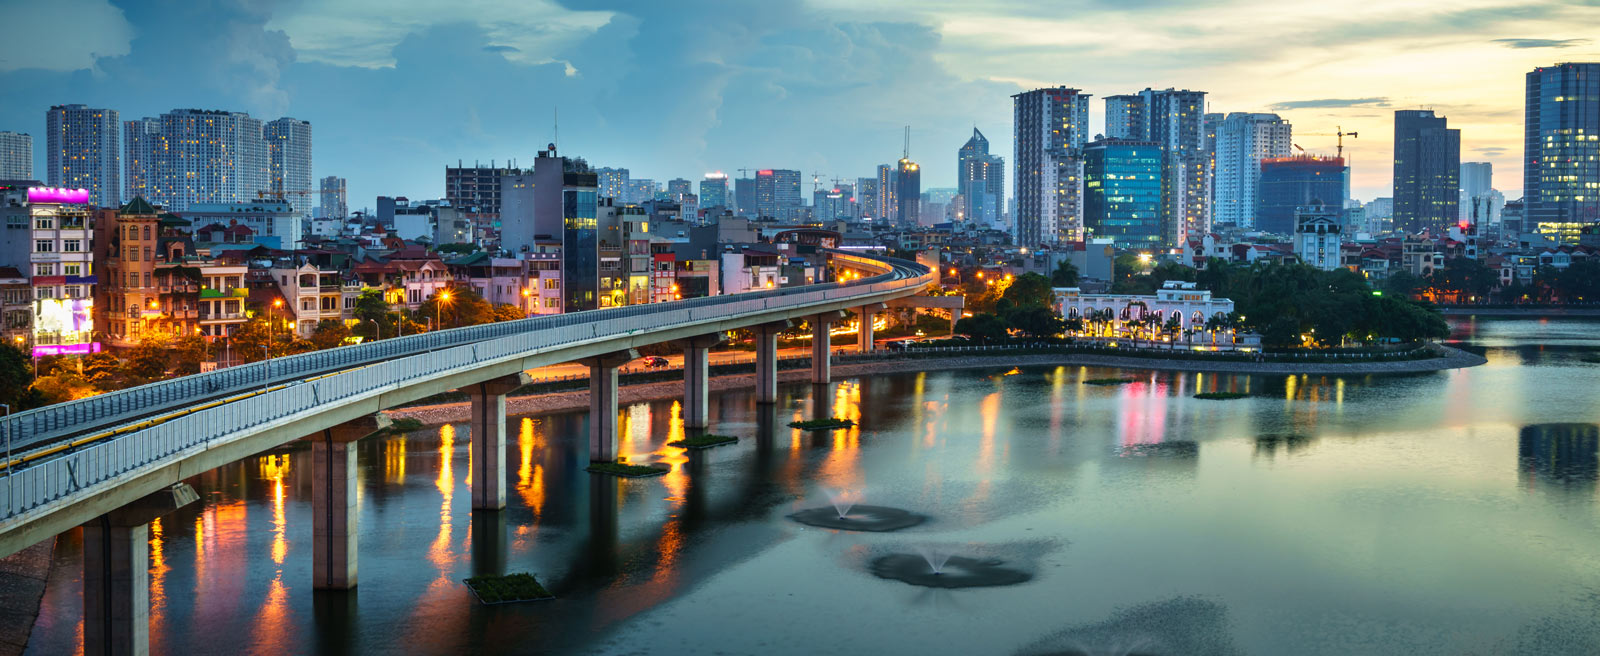 The skyline of Hanoi, Vietnam